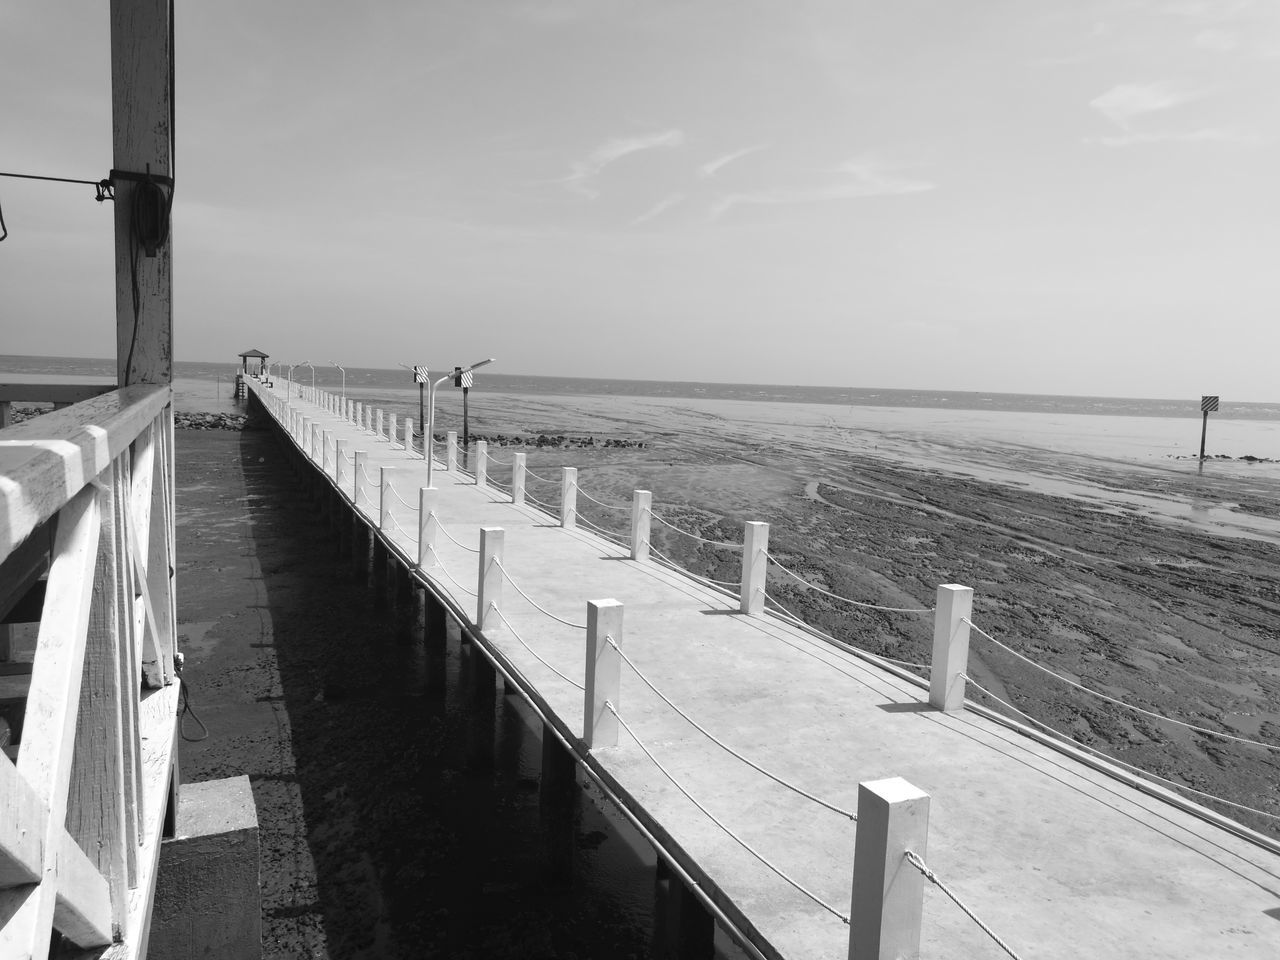 sea, horizon over water, railing, water, day, outdoors, sky, nature, no people, nautical vessel, beauty in nature, fishing pole